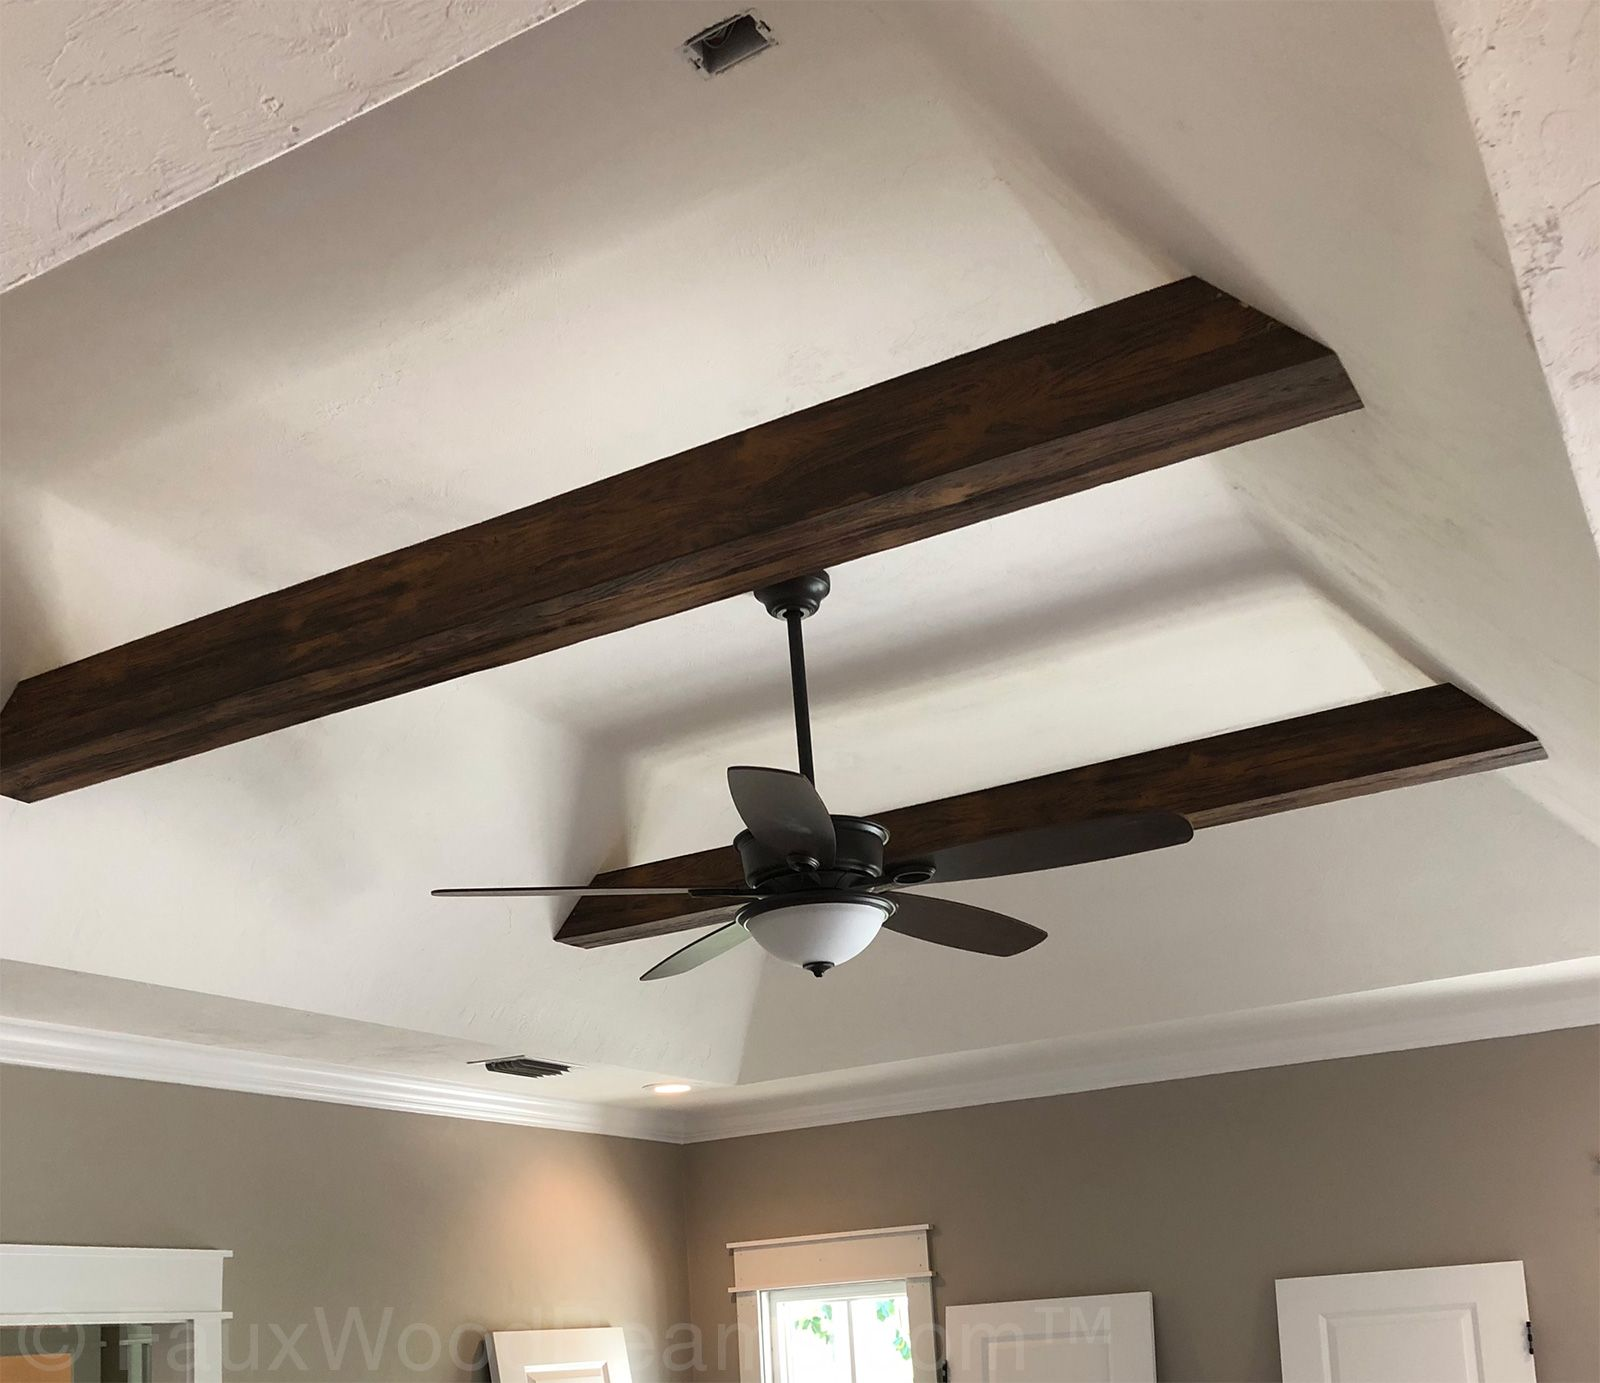 Ceiling Design Pictures Beam Projects For Home Business Beams